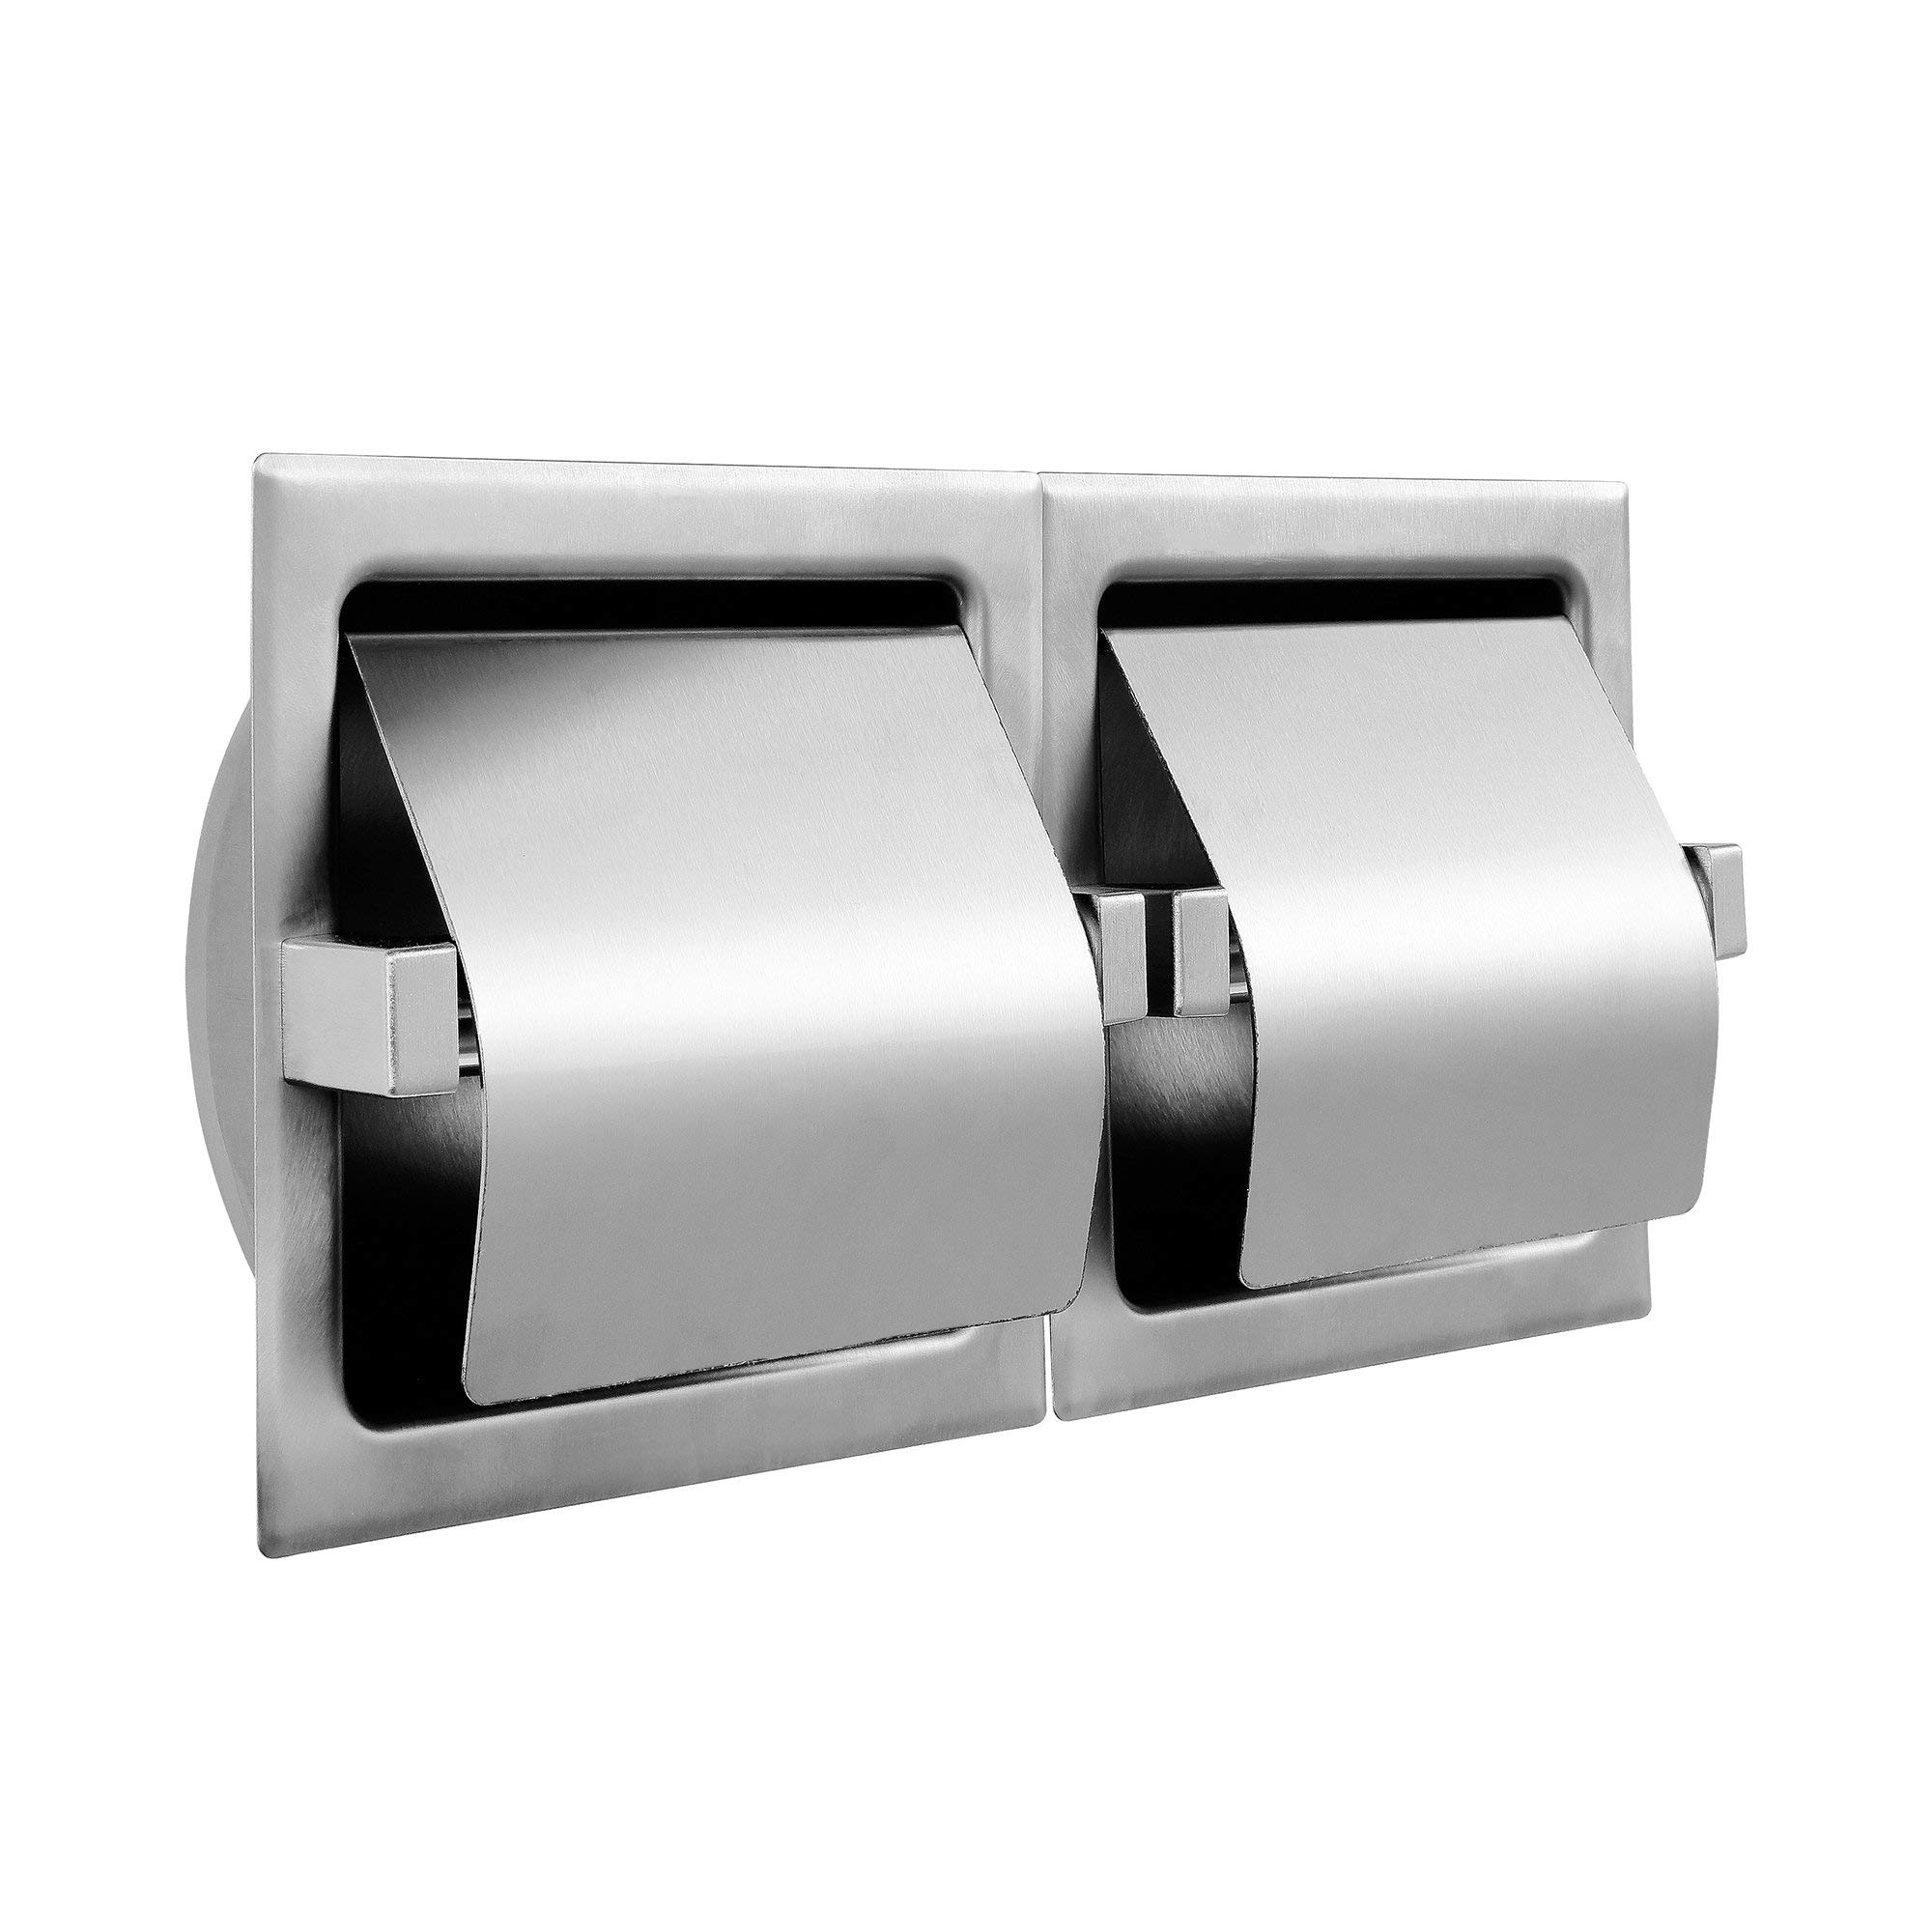 Dependable Direct Toilet Paper Holder - Stainless Steel - Satin Finish - Surface Mount - Holder Dimensions: 12-3/8 Inch x 6-1/2 Inch x 3 Inch by Dependable Direct